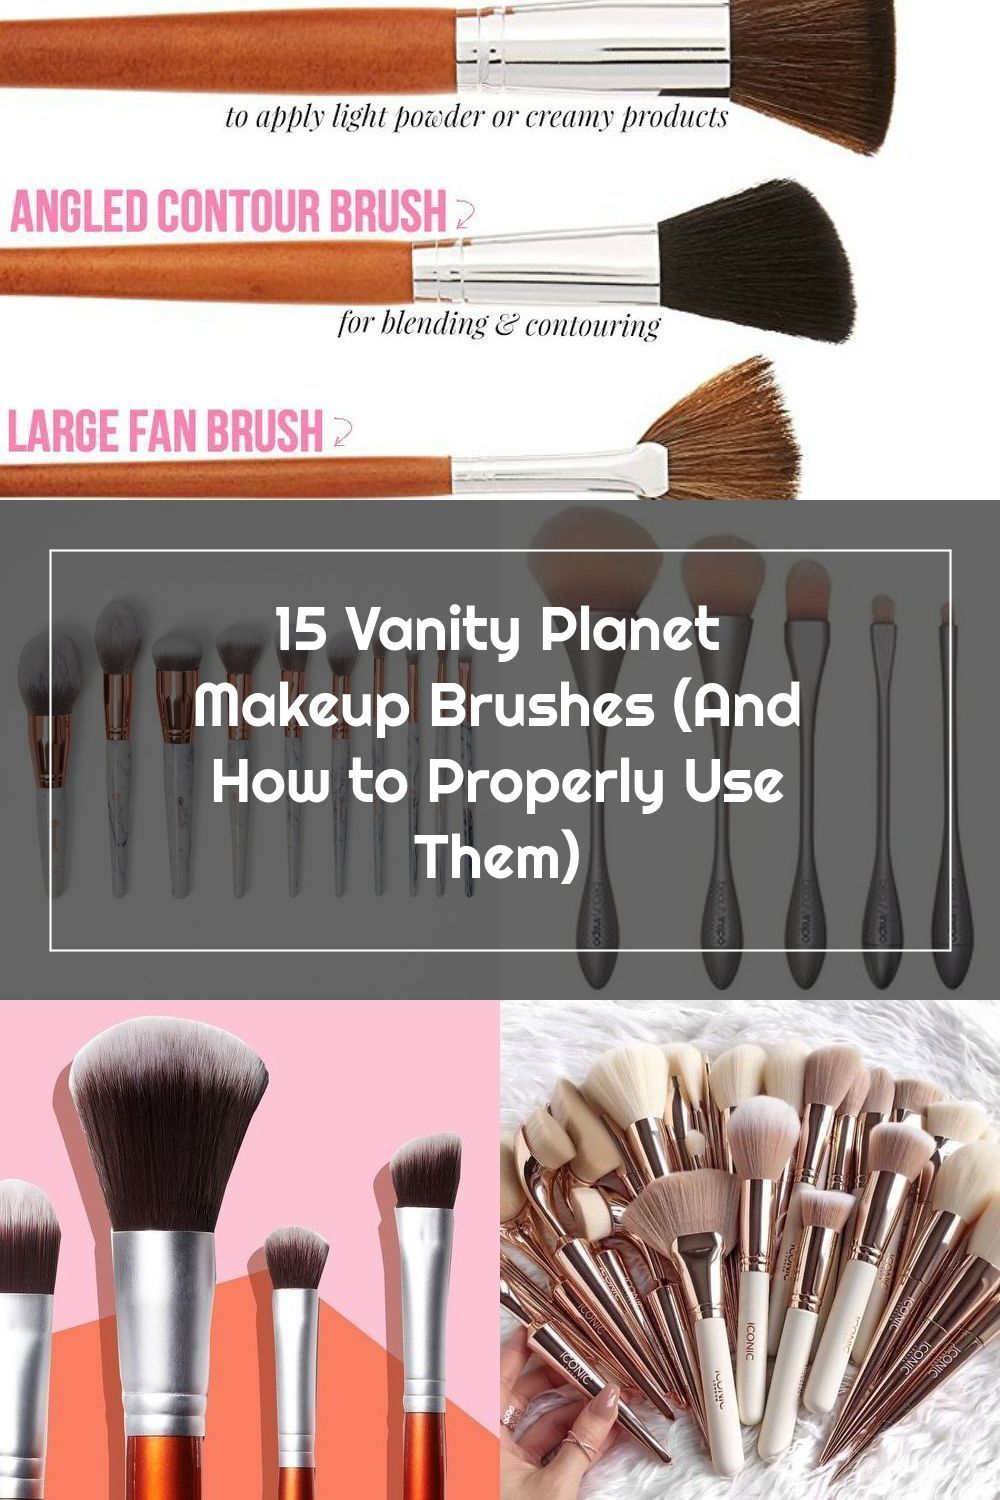 This makeup brush guide shows 15 of the best Vanity